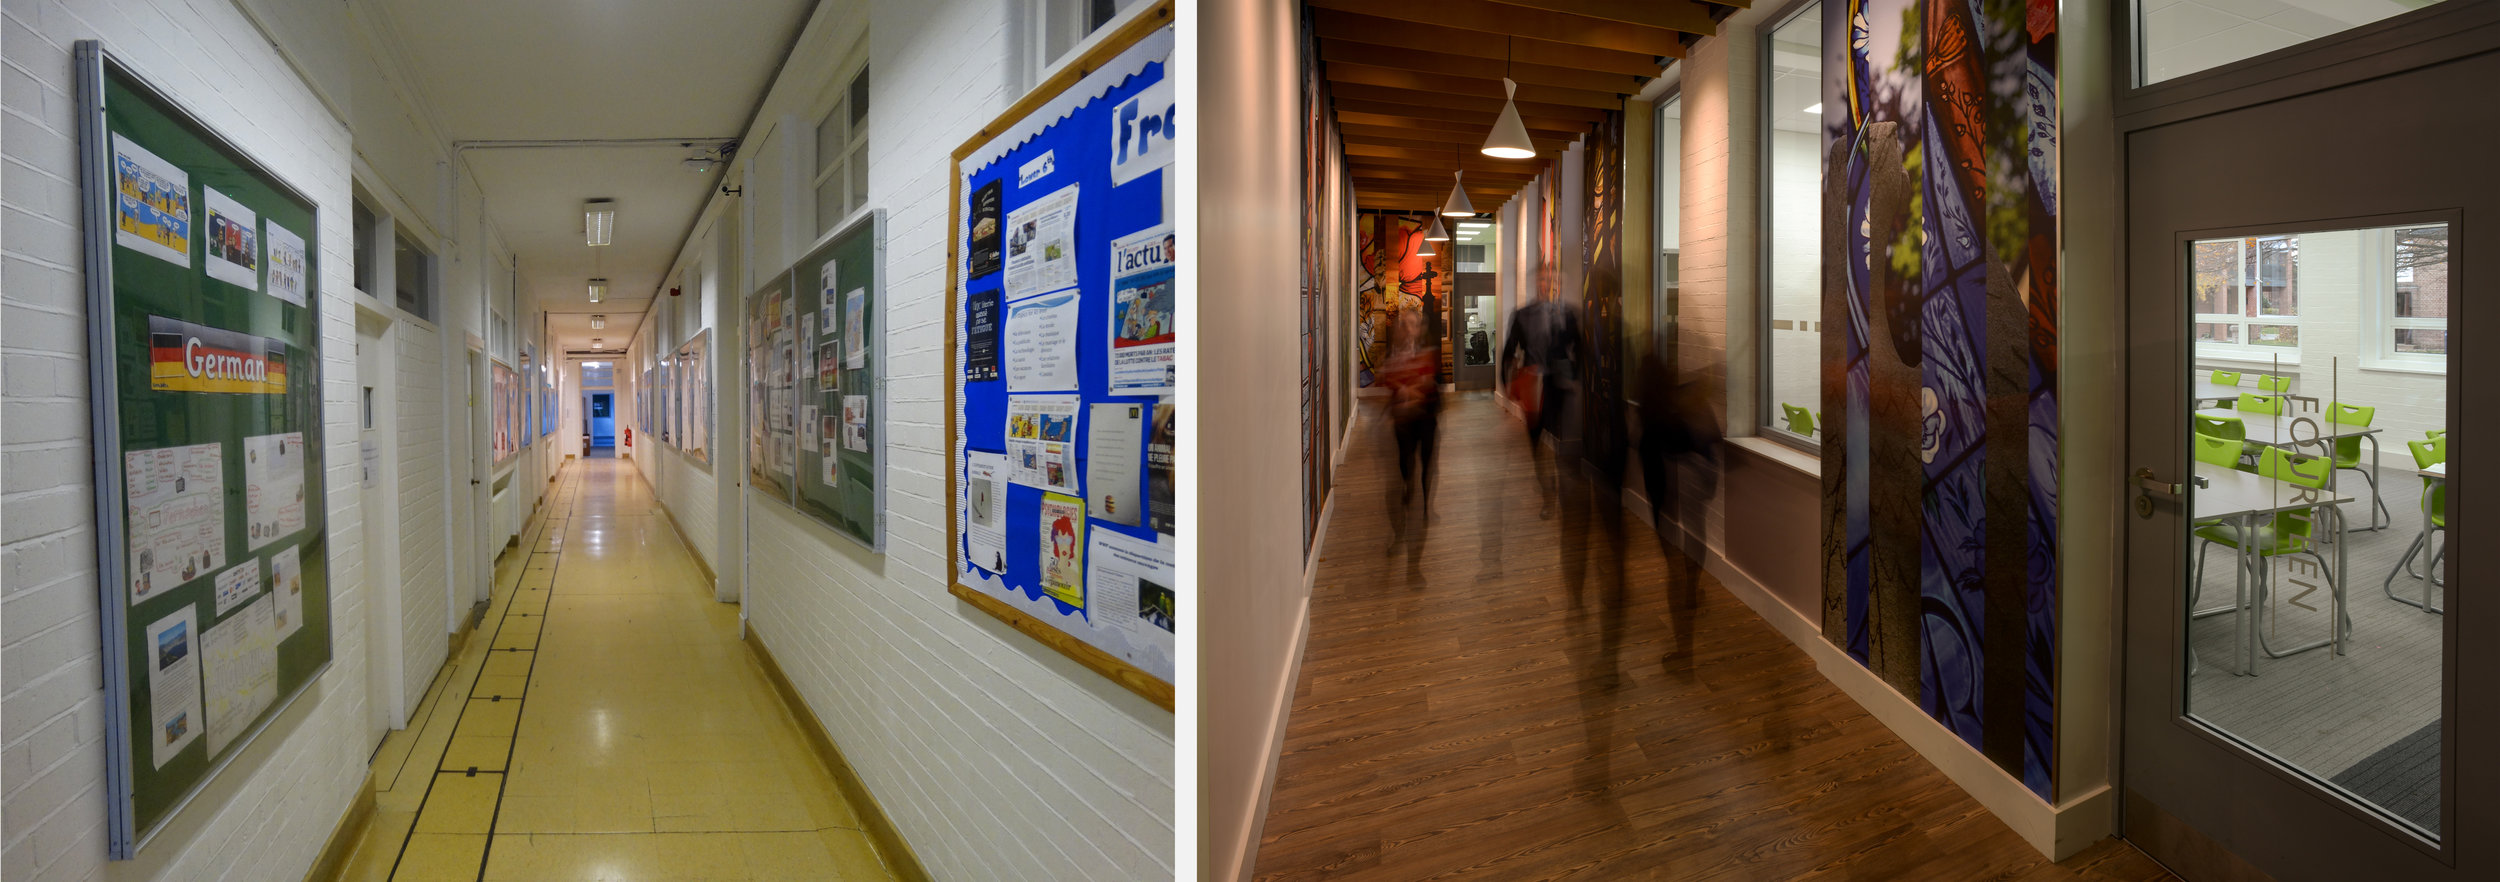 comparison image, showing before and after images of the corridor of the Hamilton Building